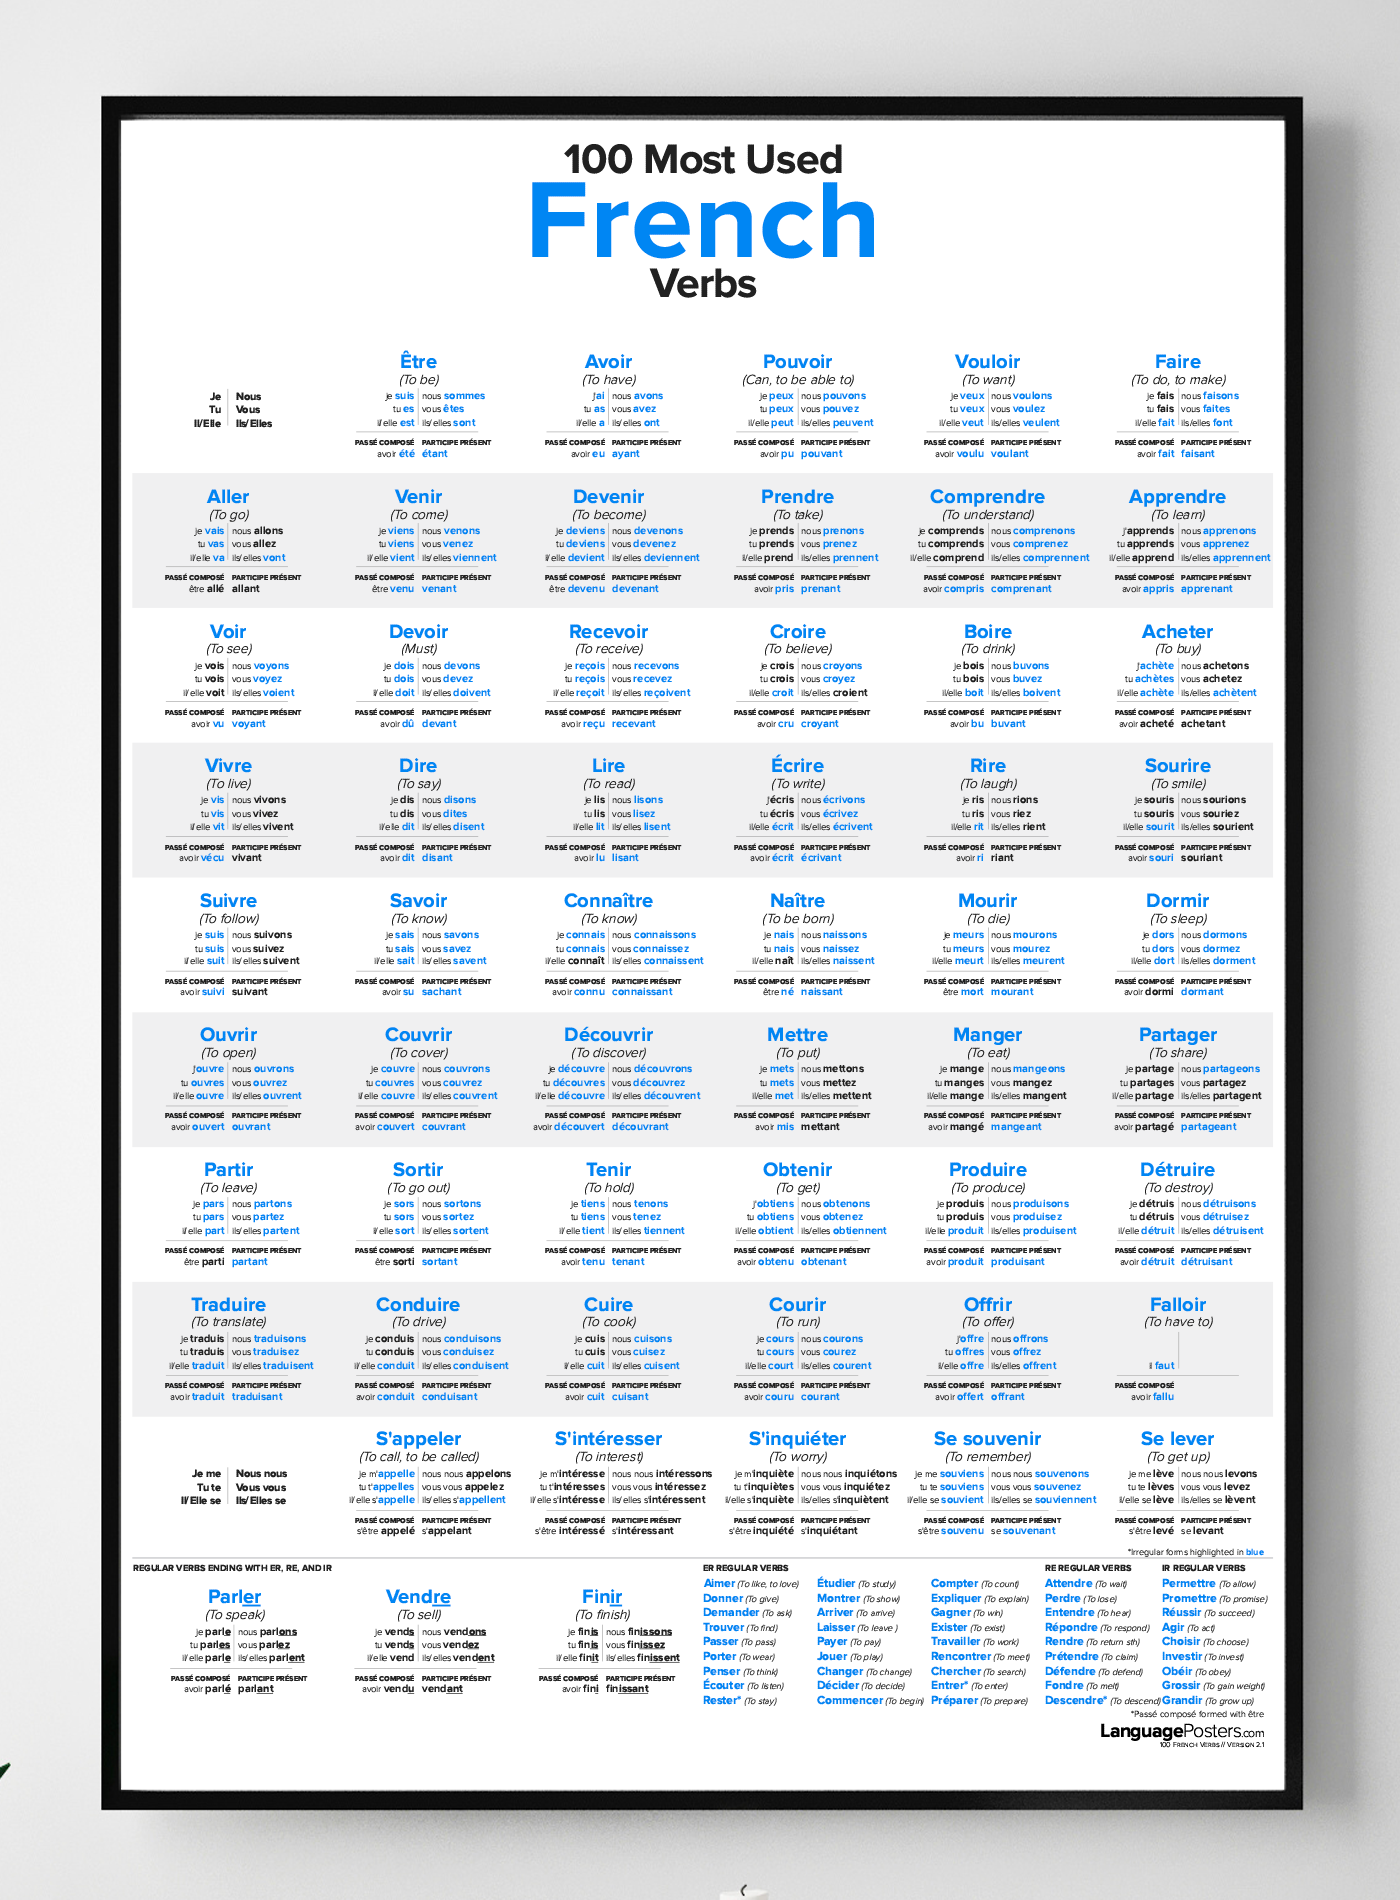 100 Most Used French Verbs Poster - LanguagePosters.com